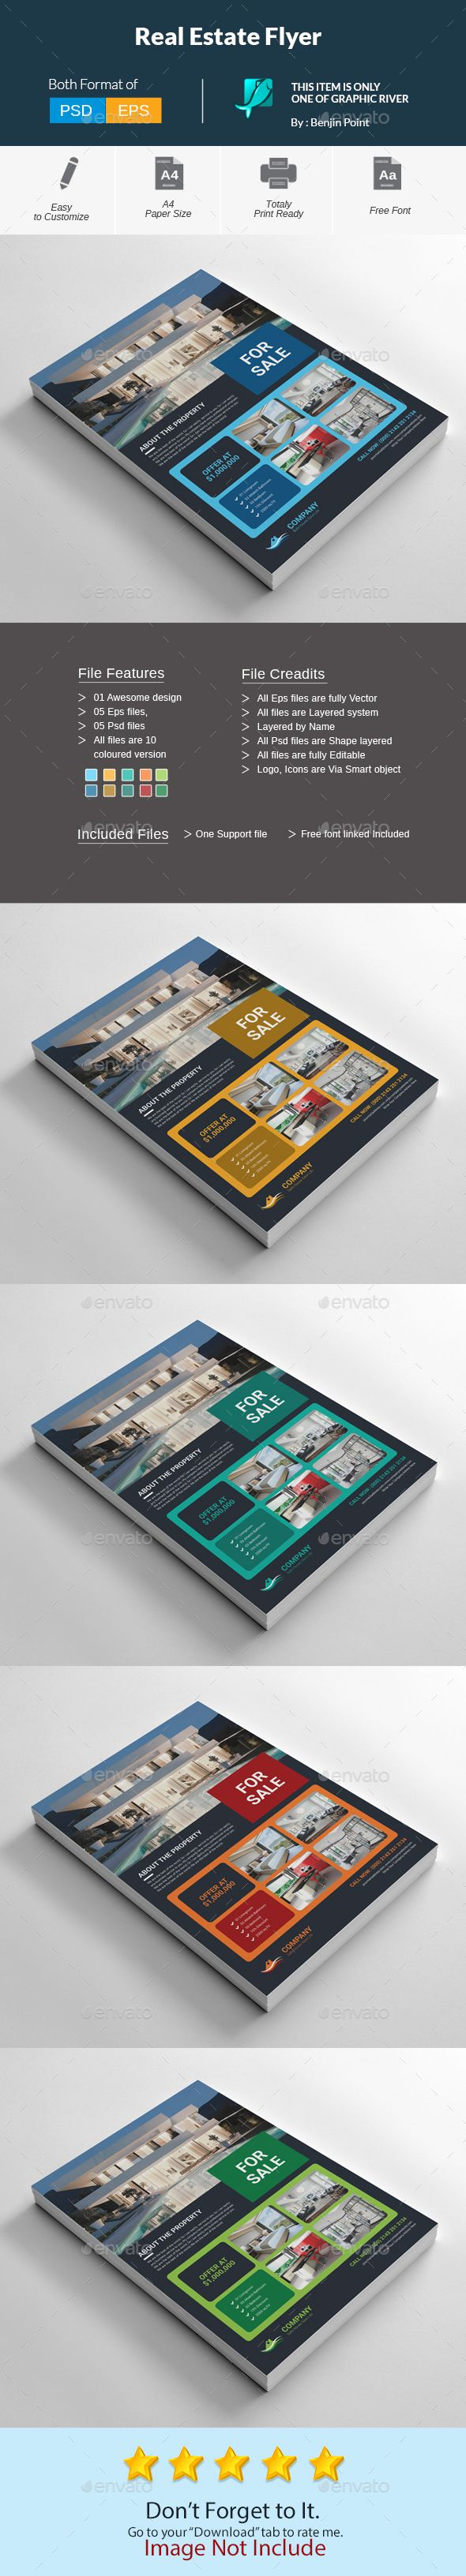 Real Estate Flyer by Benjinpoint Real Estate Flyer Very Powerful & Professional Corporate Clean, Creative & Modern Business Flyer for Any kinds of Business Use.Fe